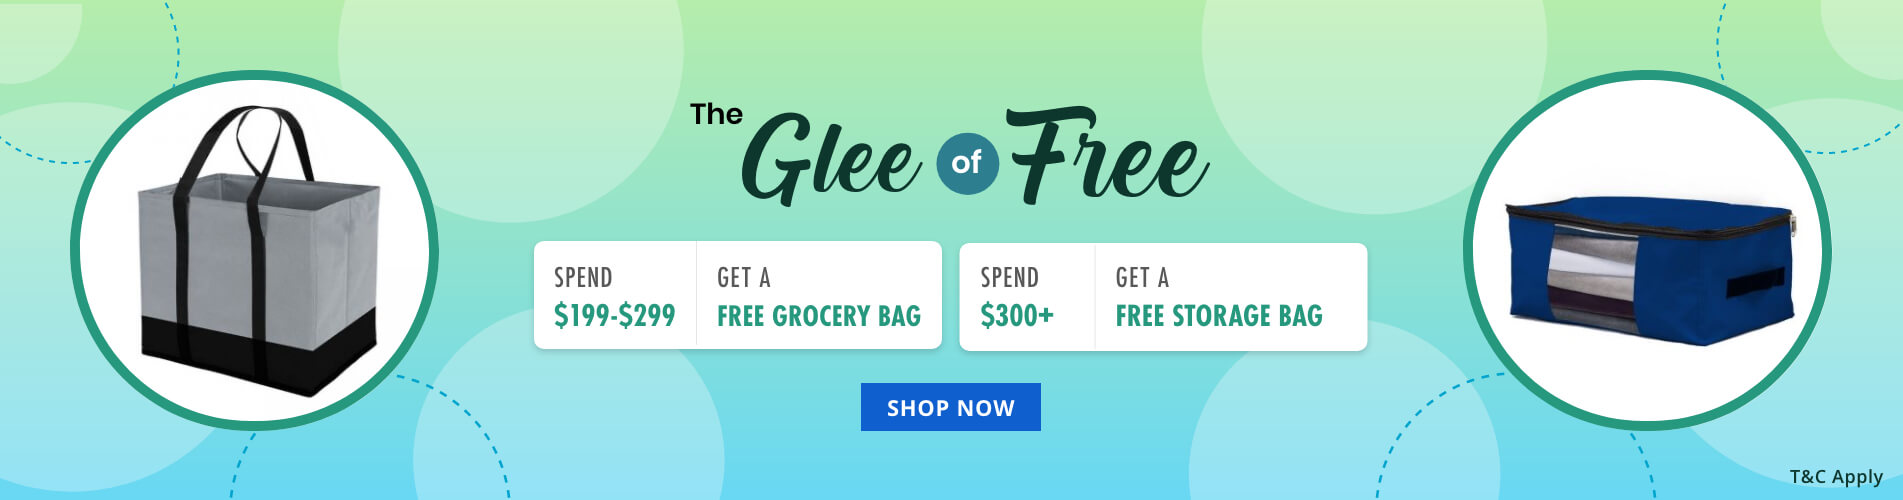 The Glee of Free